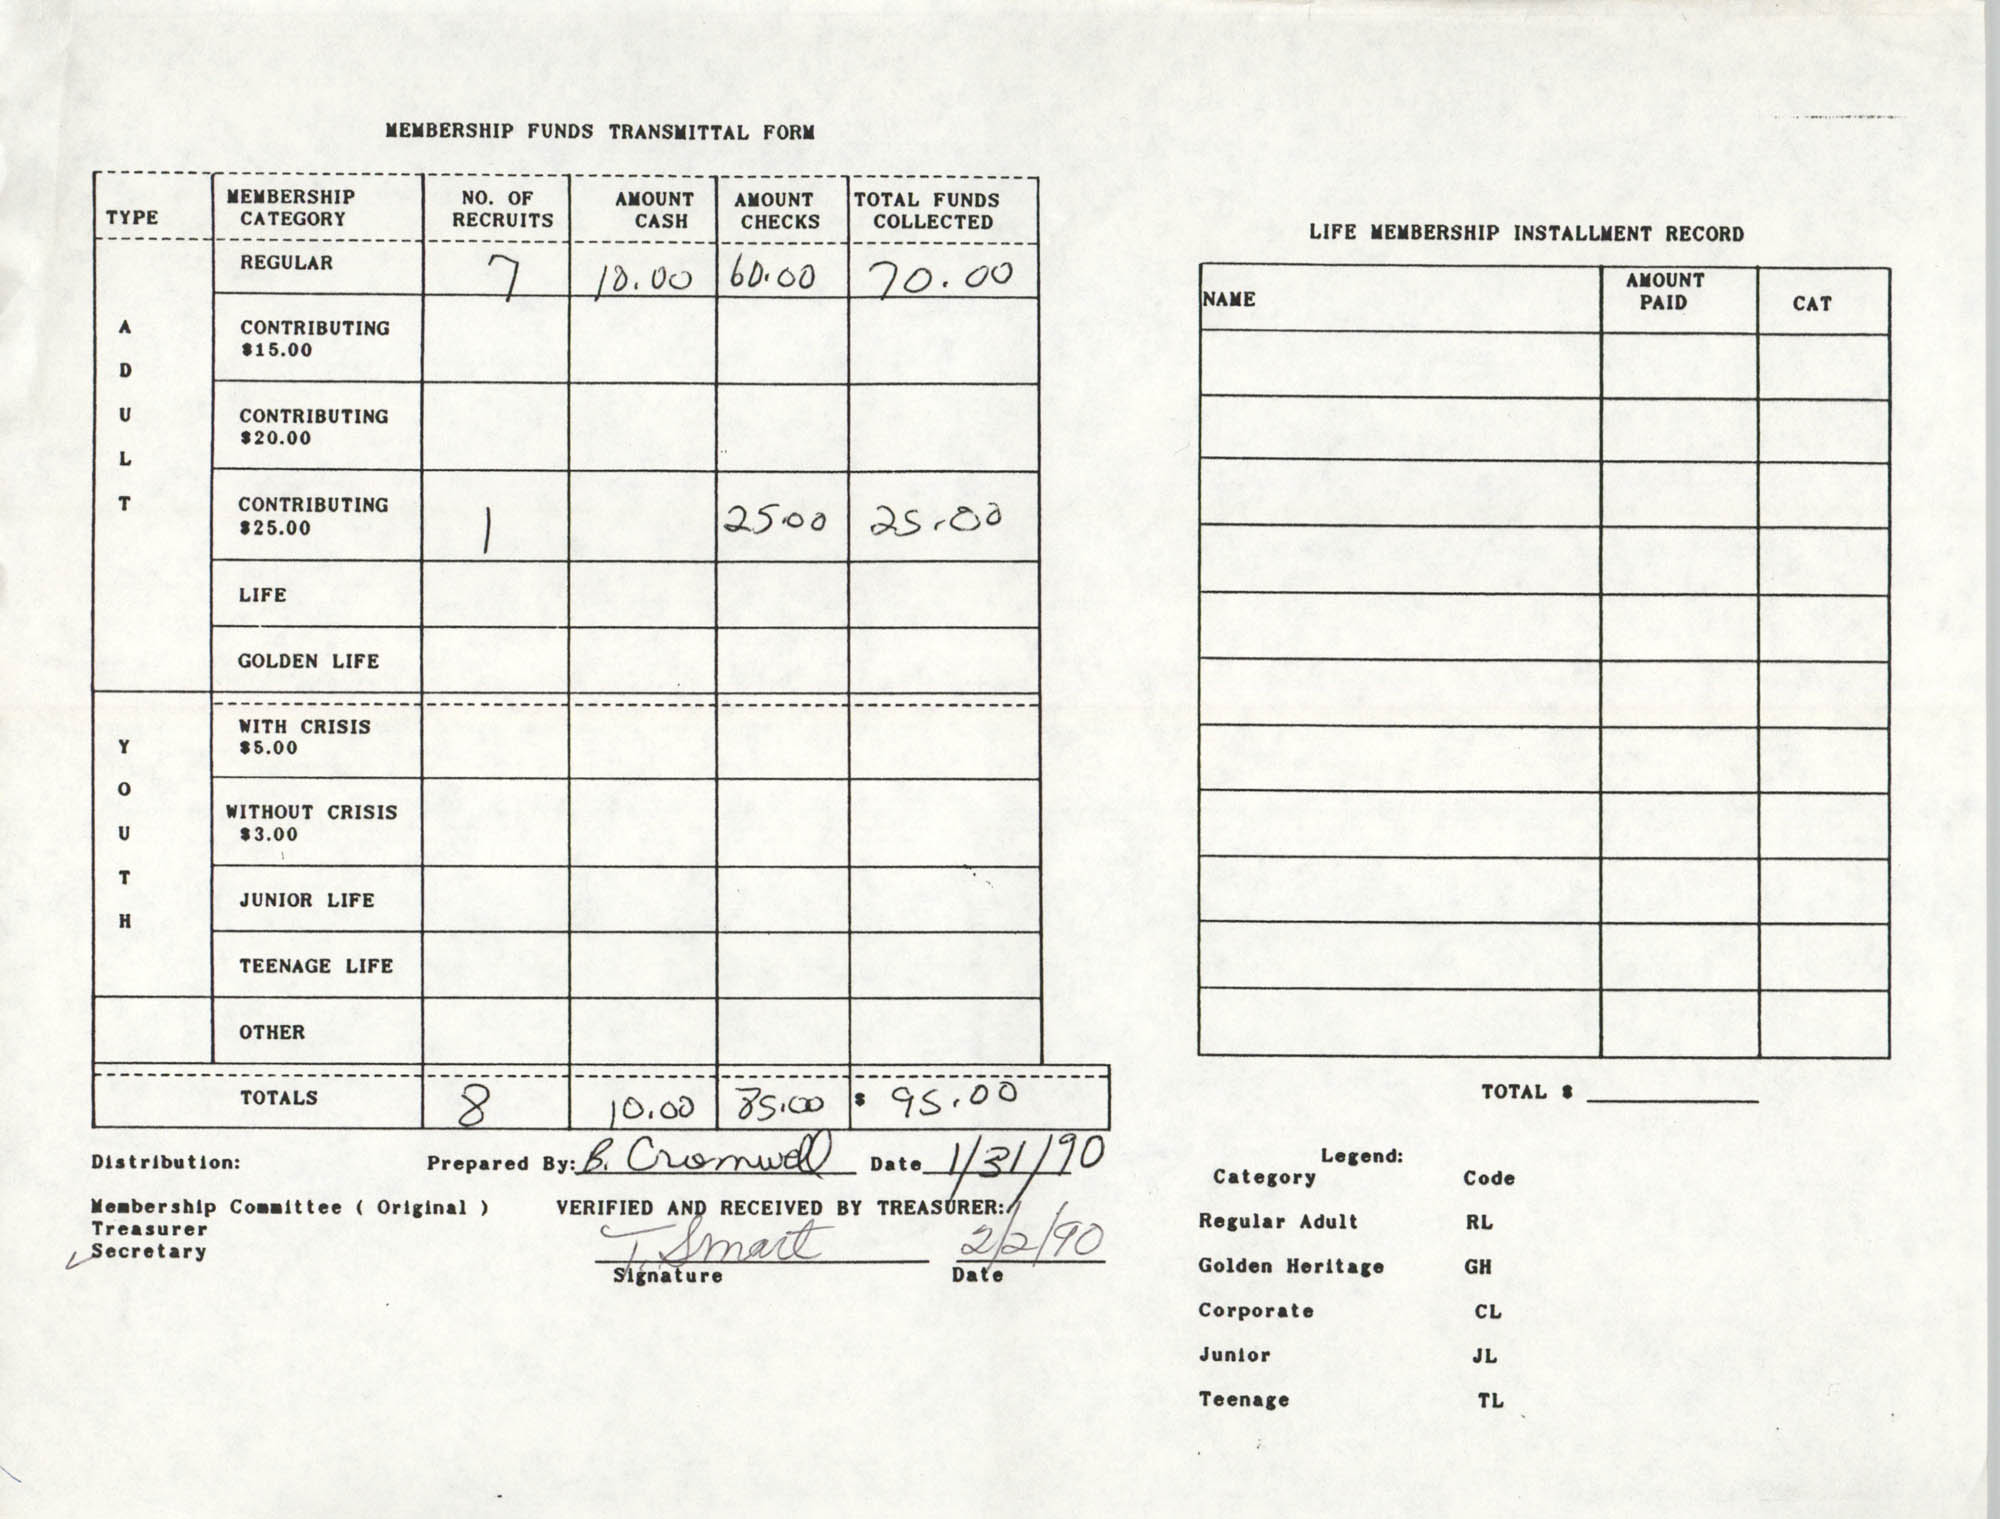 Charleston Branch of the NAACP Funds Transmittal Forms, January 1990, Page 9